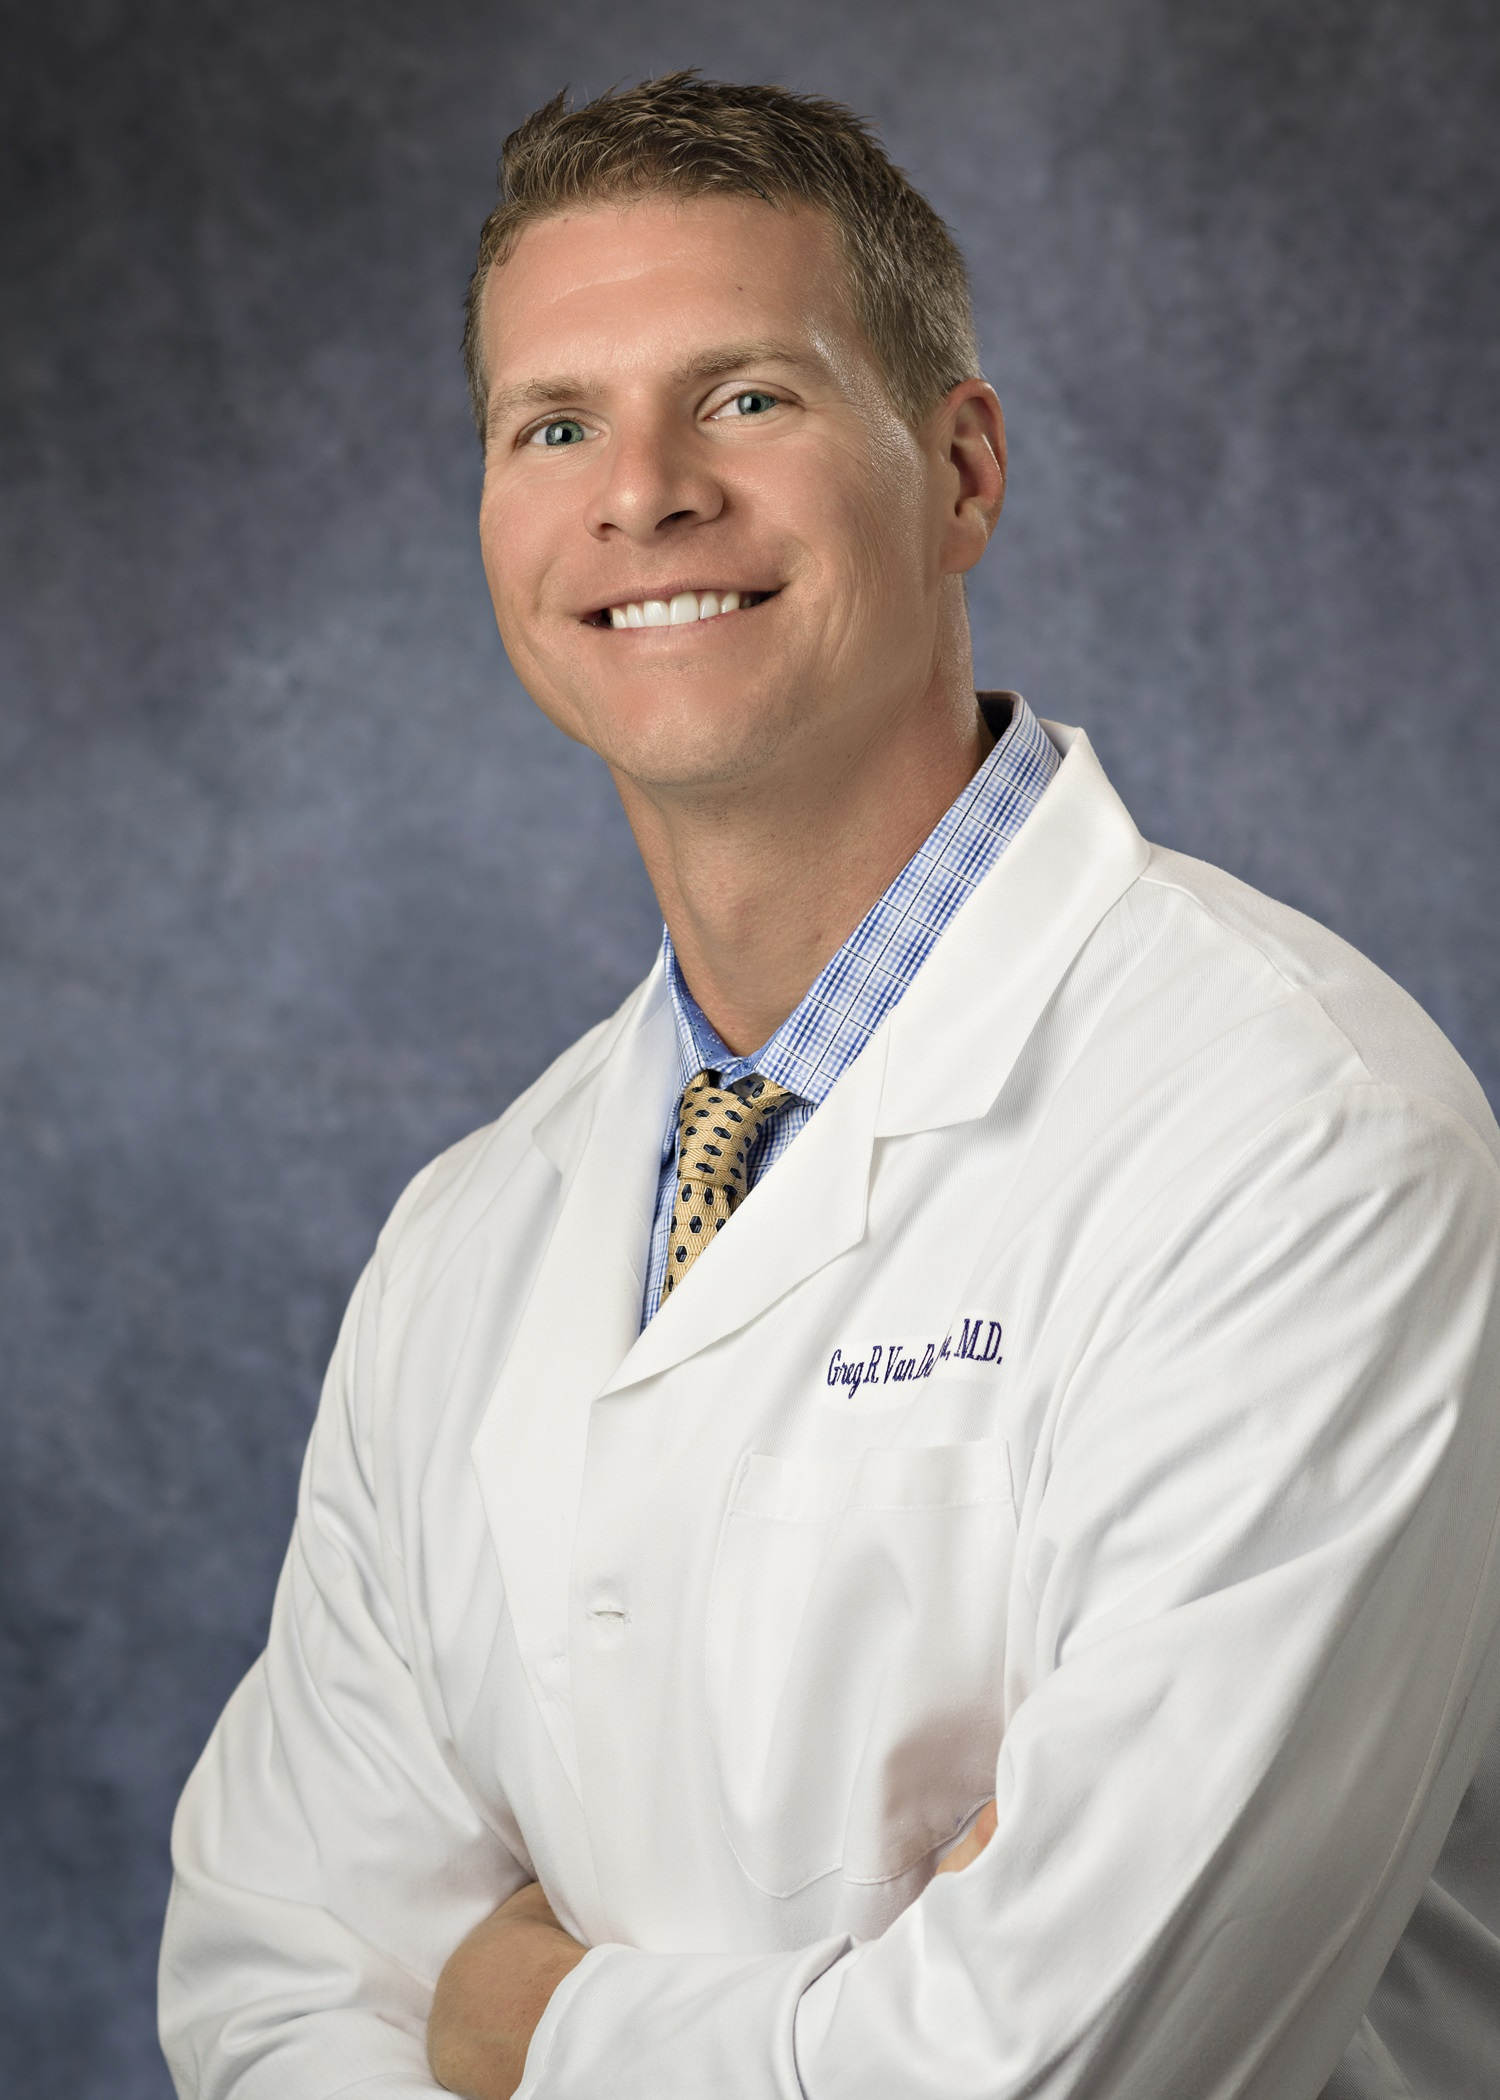 Gregory R Van Den Berghe, MD